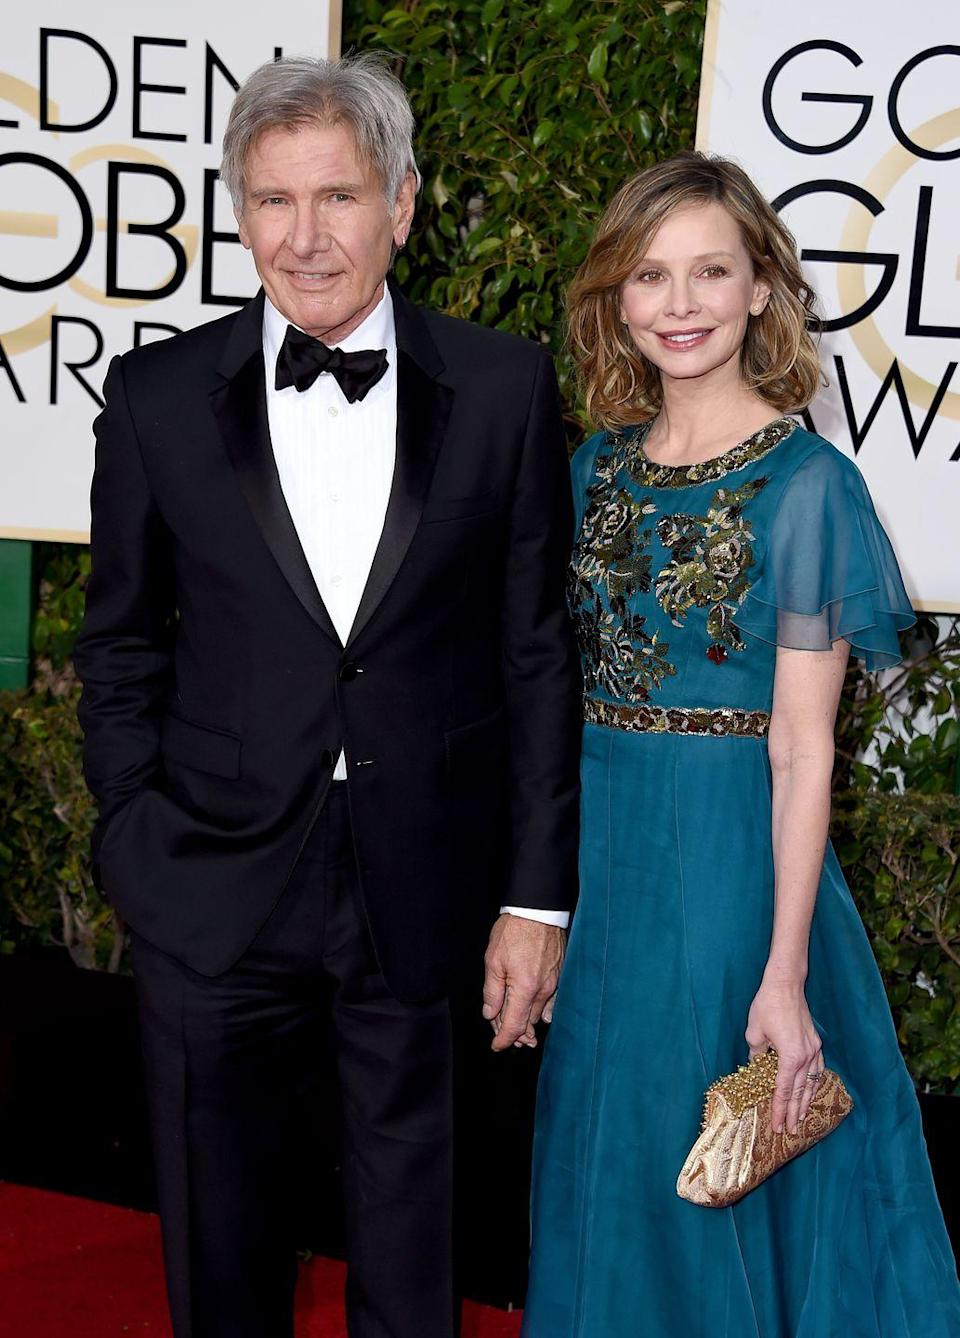 "<p>Harrison Ford and Calista Flockhart first met at the 2002 Golden Globe Awards, when Ford was 60 and Flockhart was 38. They continued to date for another seven-and-a-half years before Ford finally <a href=""http://people.com/celebrity/harrison-ford-proposes-to-calista-flockhart/"" rel=""nofollow noopener"" target=""_blank"" data-ylk=""slk:popped the question"" class=""link rapid-noclick-resp"">popped the question</a> over Valentine's Day weekend in 2009. They <a href=""http://people.com/celebrity/harrison-ford-and-calista-flockhart-get-married/"" rel=""nofollow noopener"" target=""_blank"" data-ylk=""slk:married"" class=""link rapid-noclick-resp"">married</a> that same year in Santa Fe, New Mexico, and have one adopted son together.</p>"